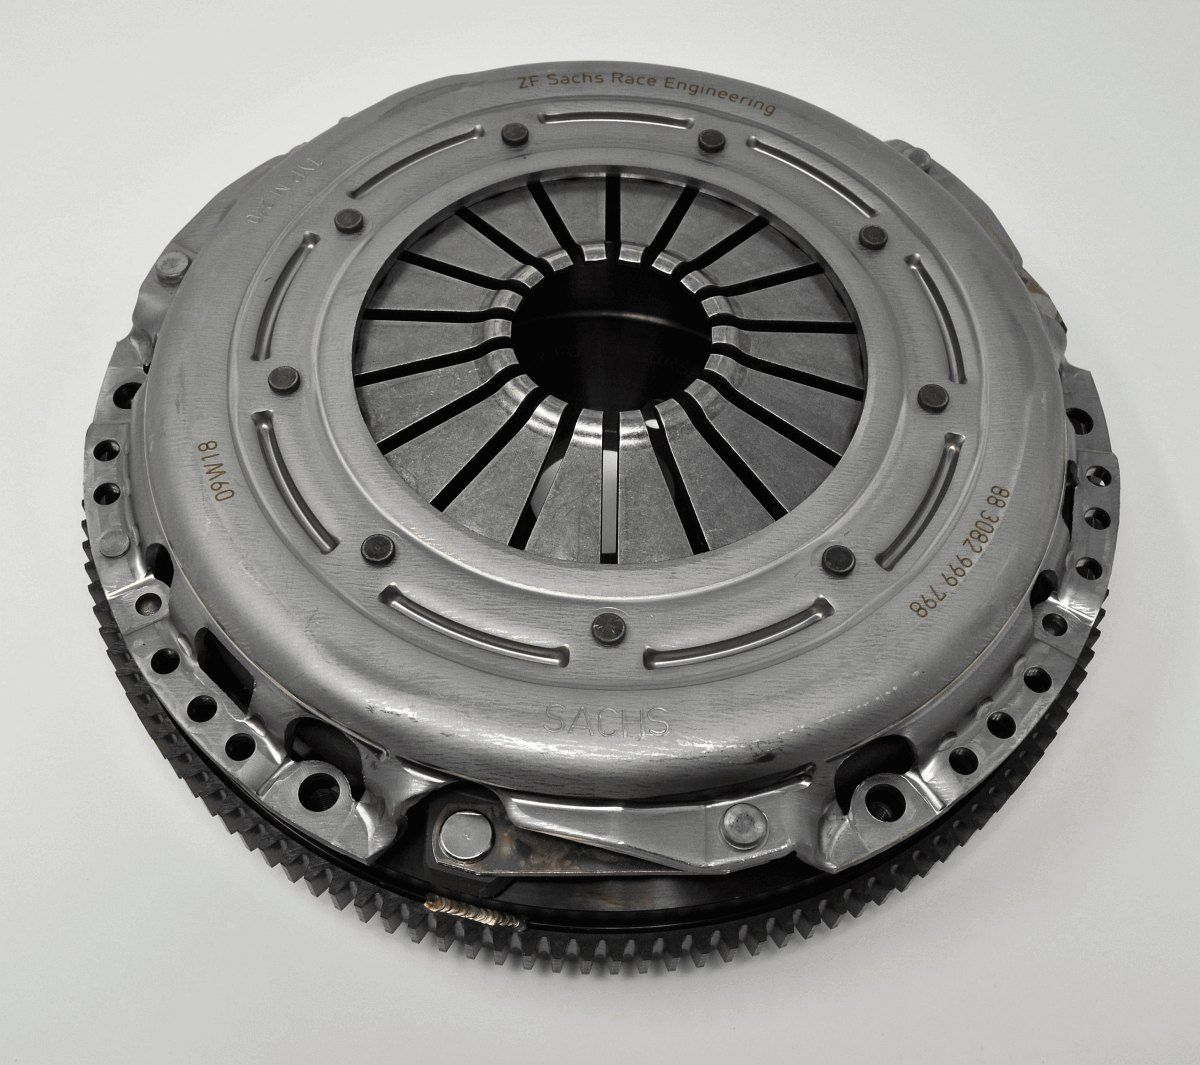 Clutch set 883089 000112 SACHS PERFORMANCE — only new parts